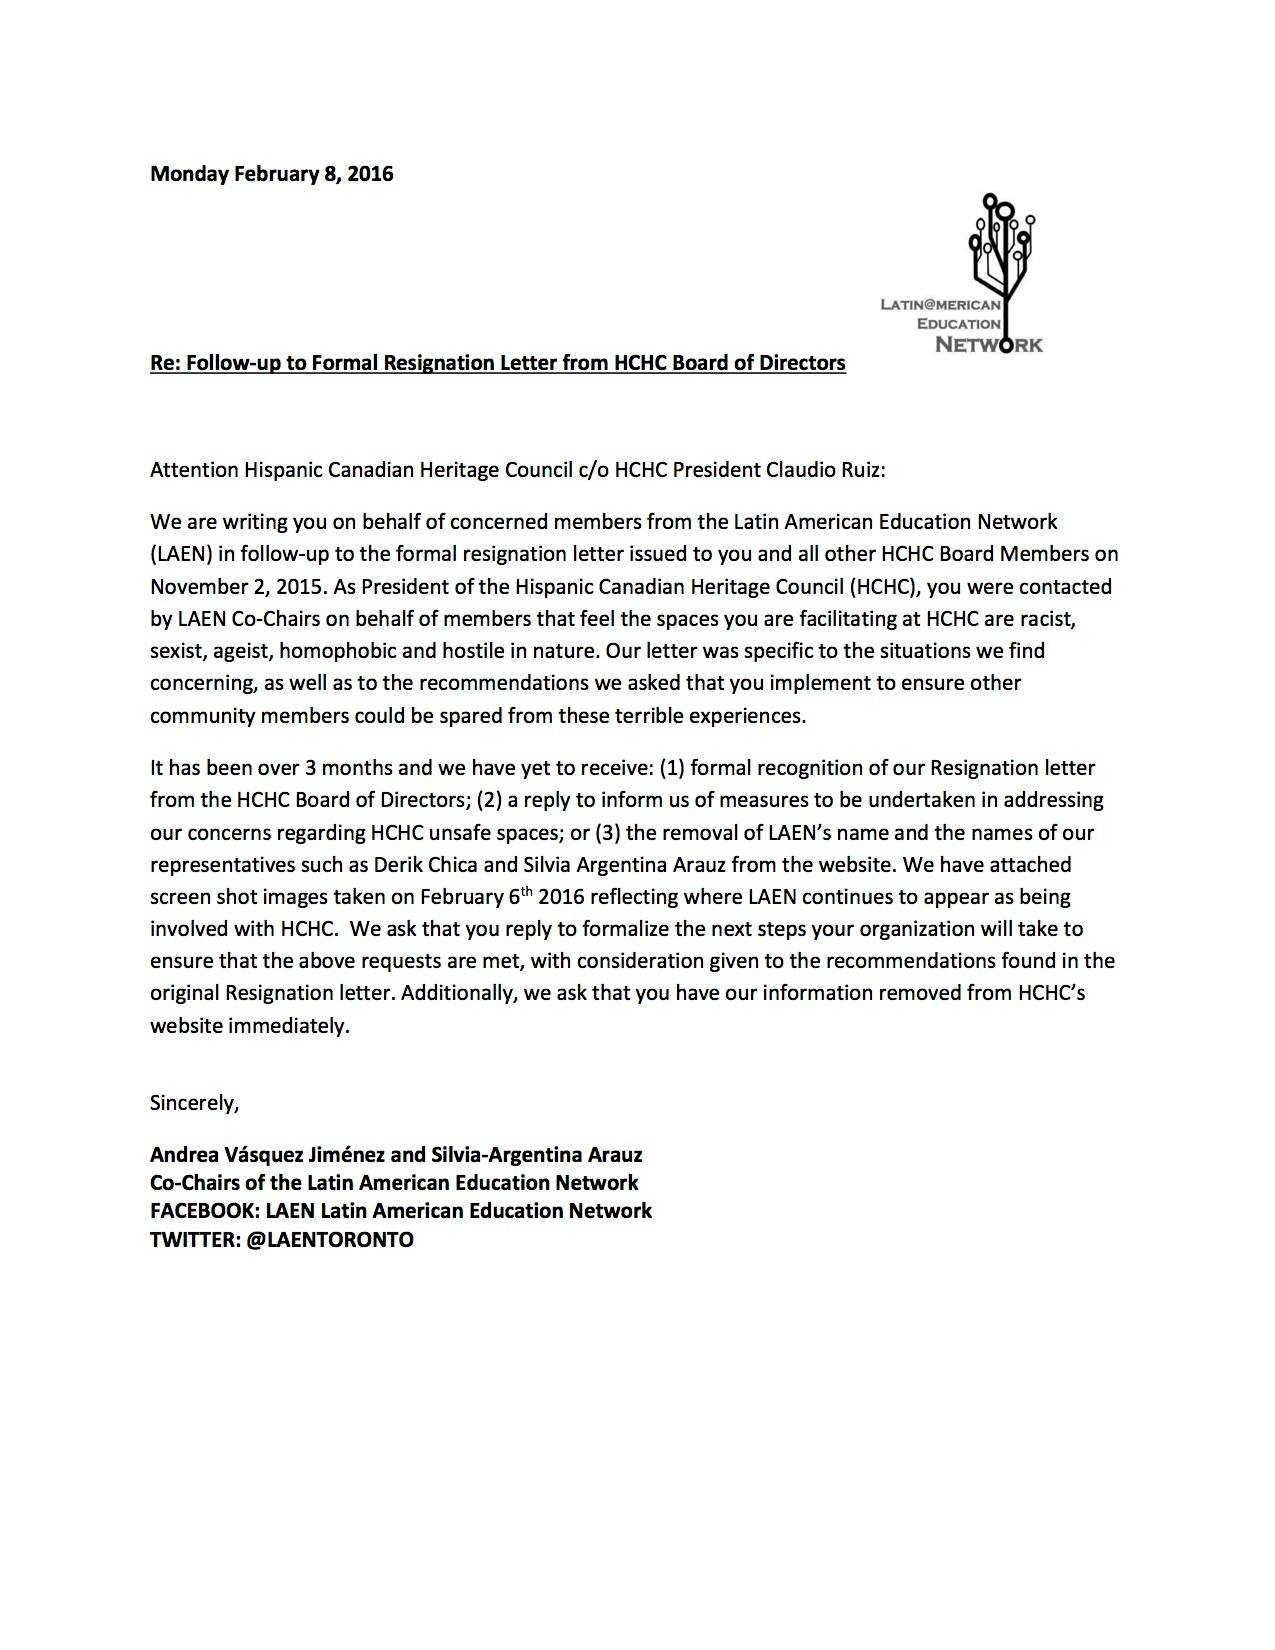 Followup to Formal Resignation Letter from HCHC Board of Directors